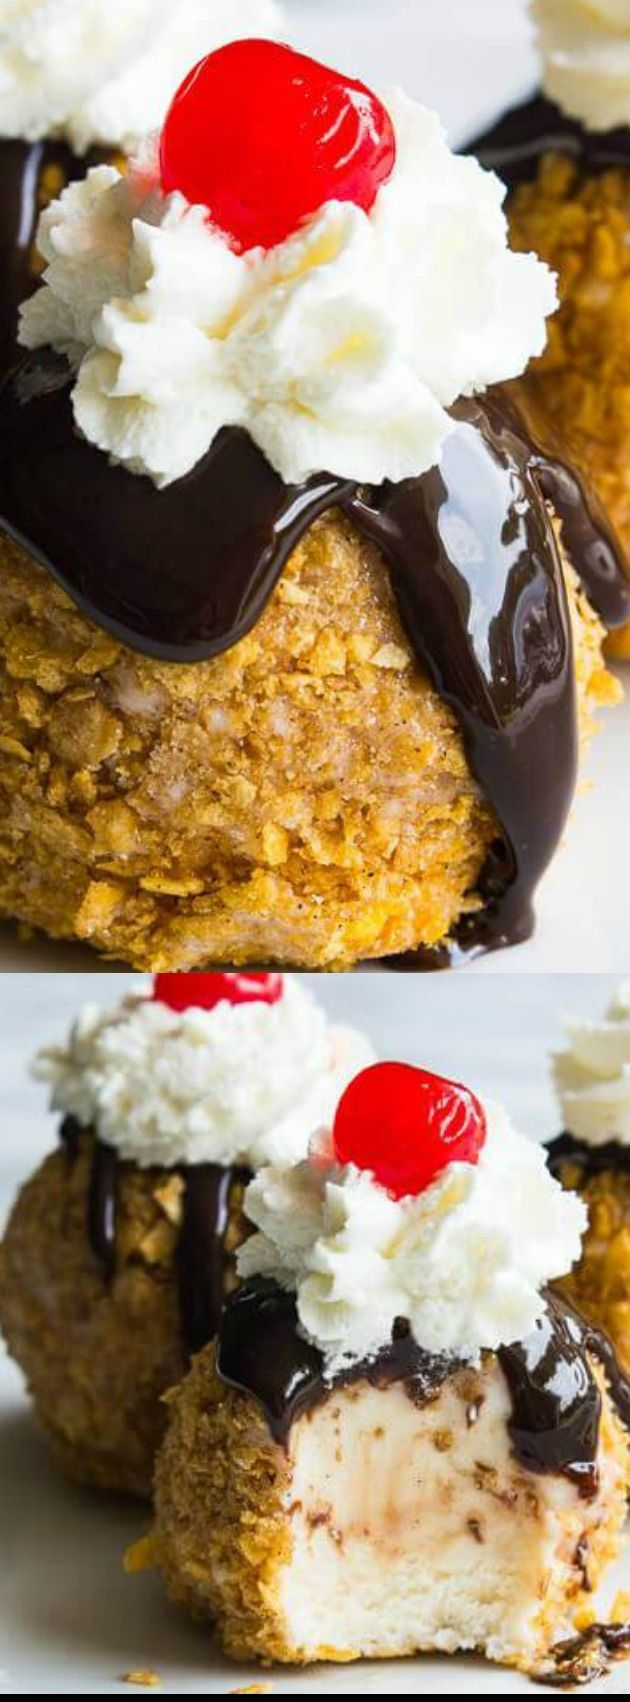 An easy to make mexican fried ice cream all the flavors of the an easy to make mexican fried ice cream all the flavors of the classic without the actual frying perfect individual desserts for summer forumfinder Choice Image